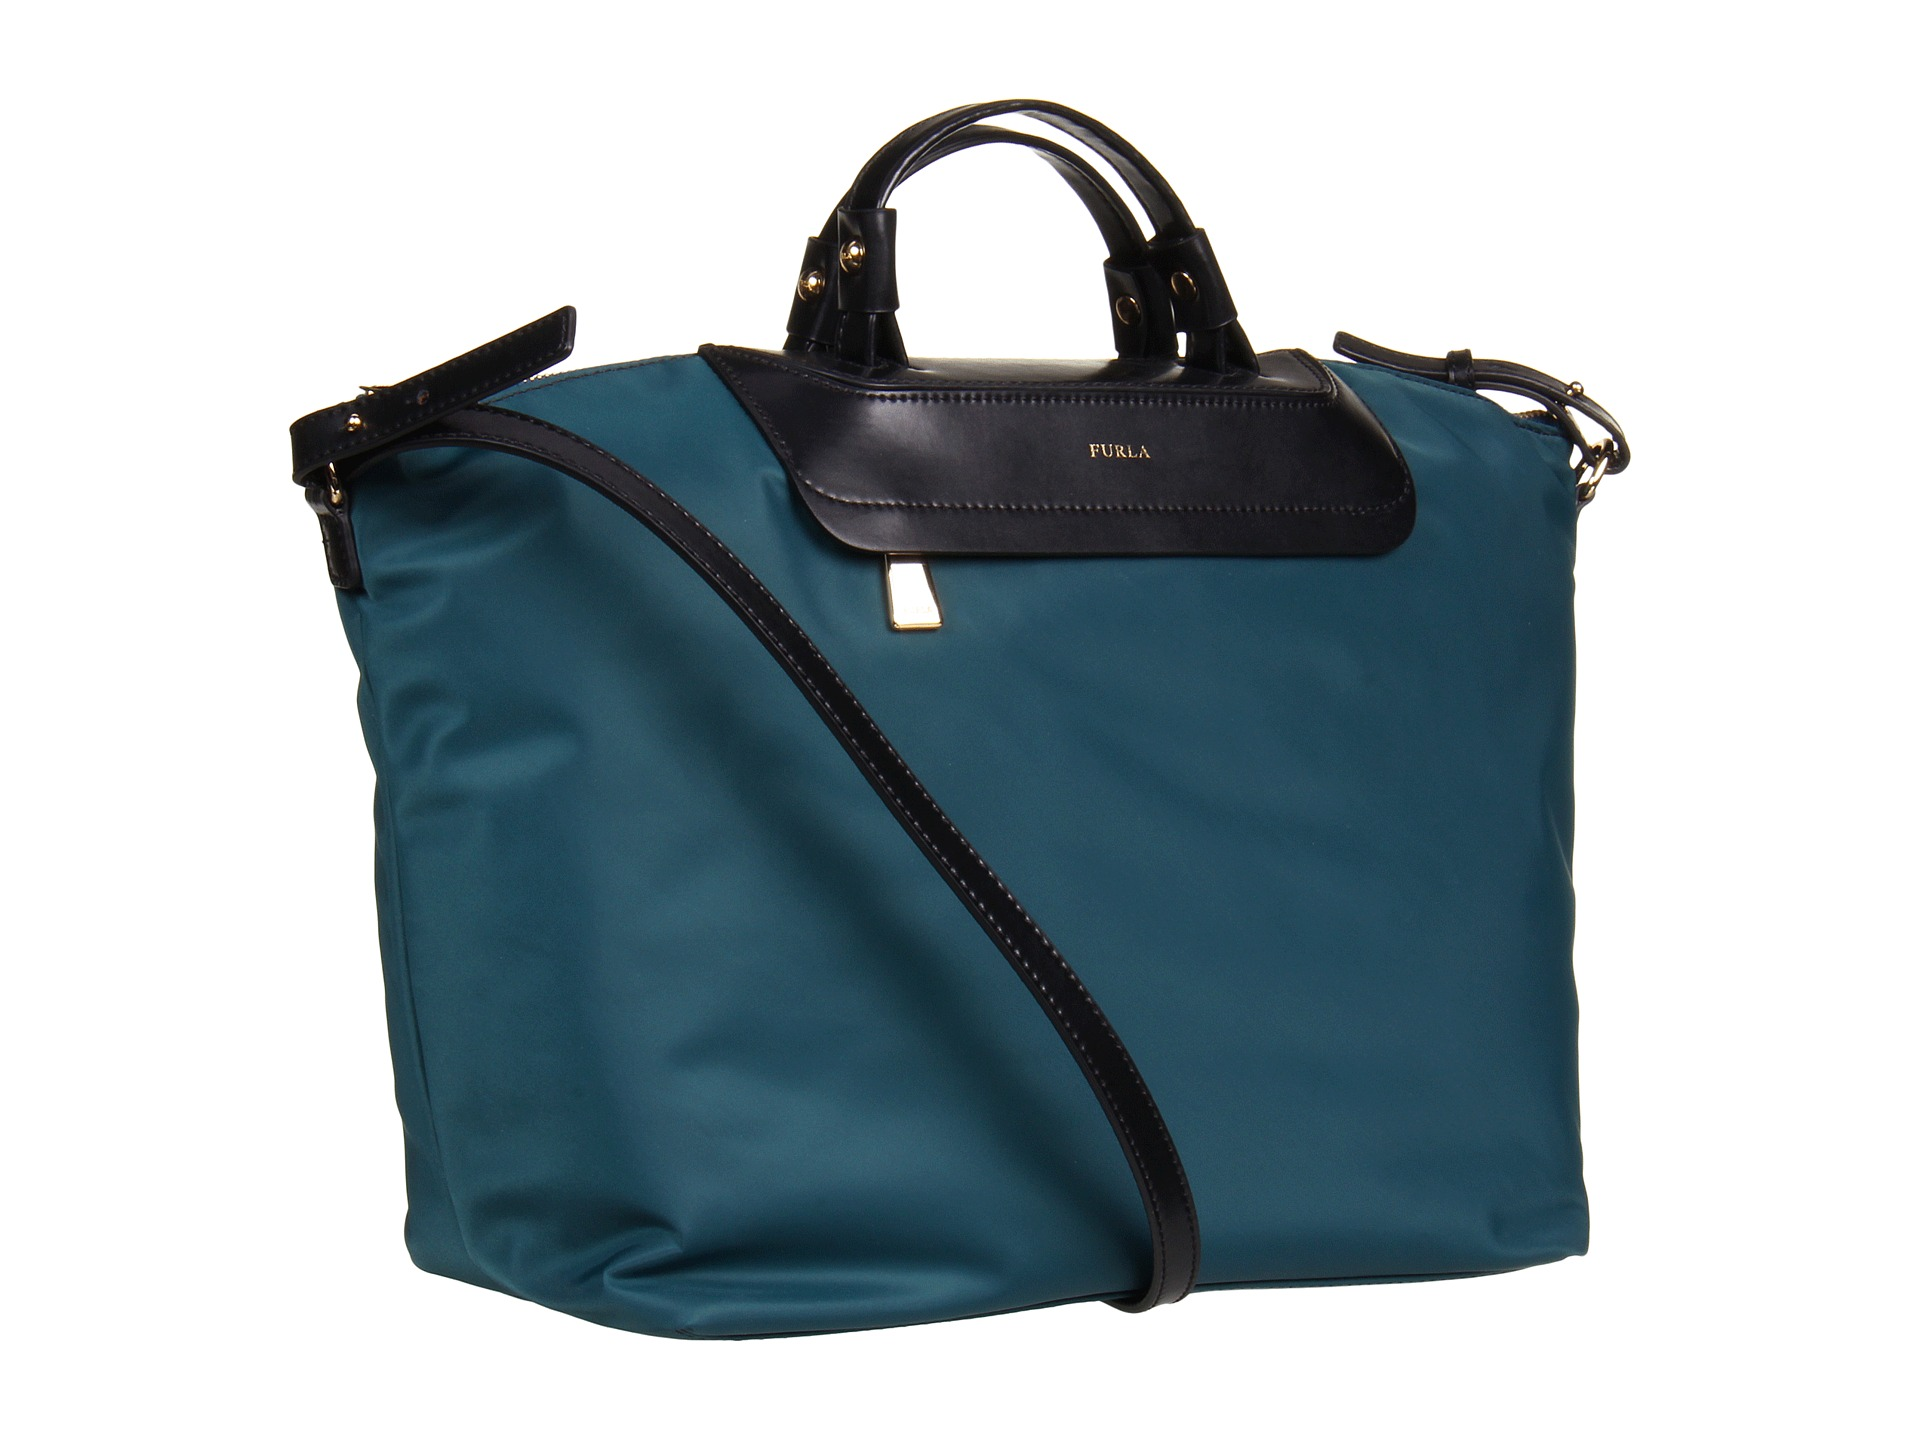 Furla Handbags Pop M Shopper C Tracolla  149.99  248.00 SALE Furla ... e74850e2fac